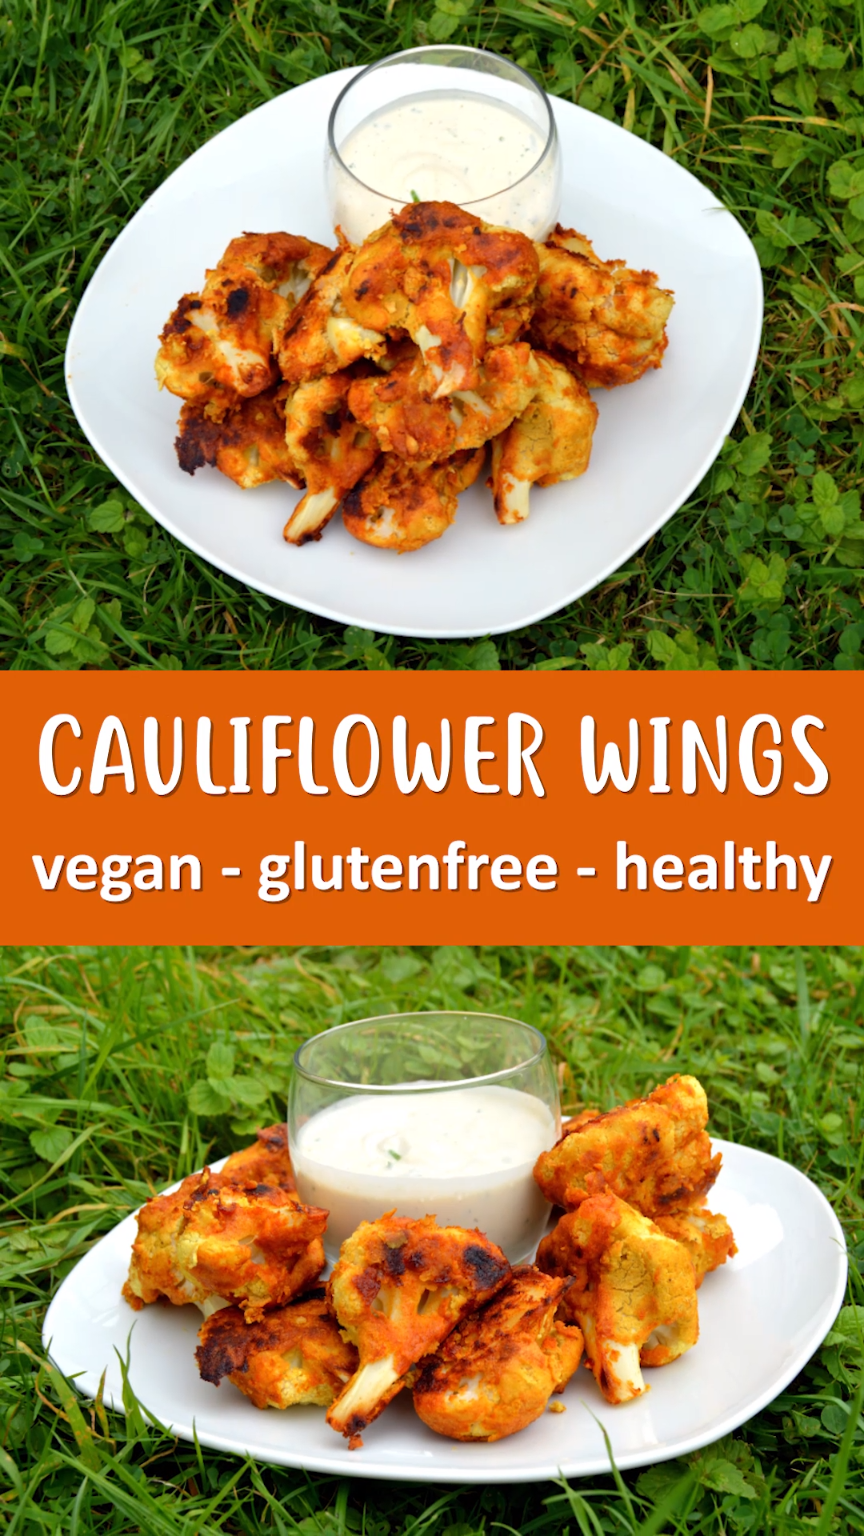 Wings that are vegan, gluten free and healthy. Cauliflower is coated in a chickpea batter then roasted to perfection before being covered in a spicy coating. Served with a raw cashew ranch dip.Cauliflower Wings that are vegan, gluten free and healthy. Cauliflower is coated in a chickpea batter then roasted to perfection before being cov...